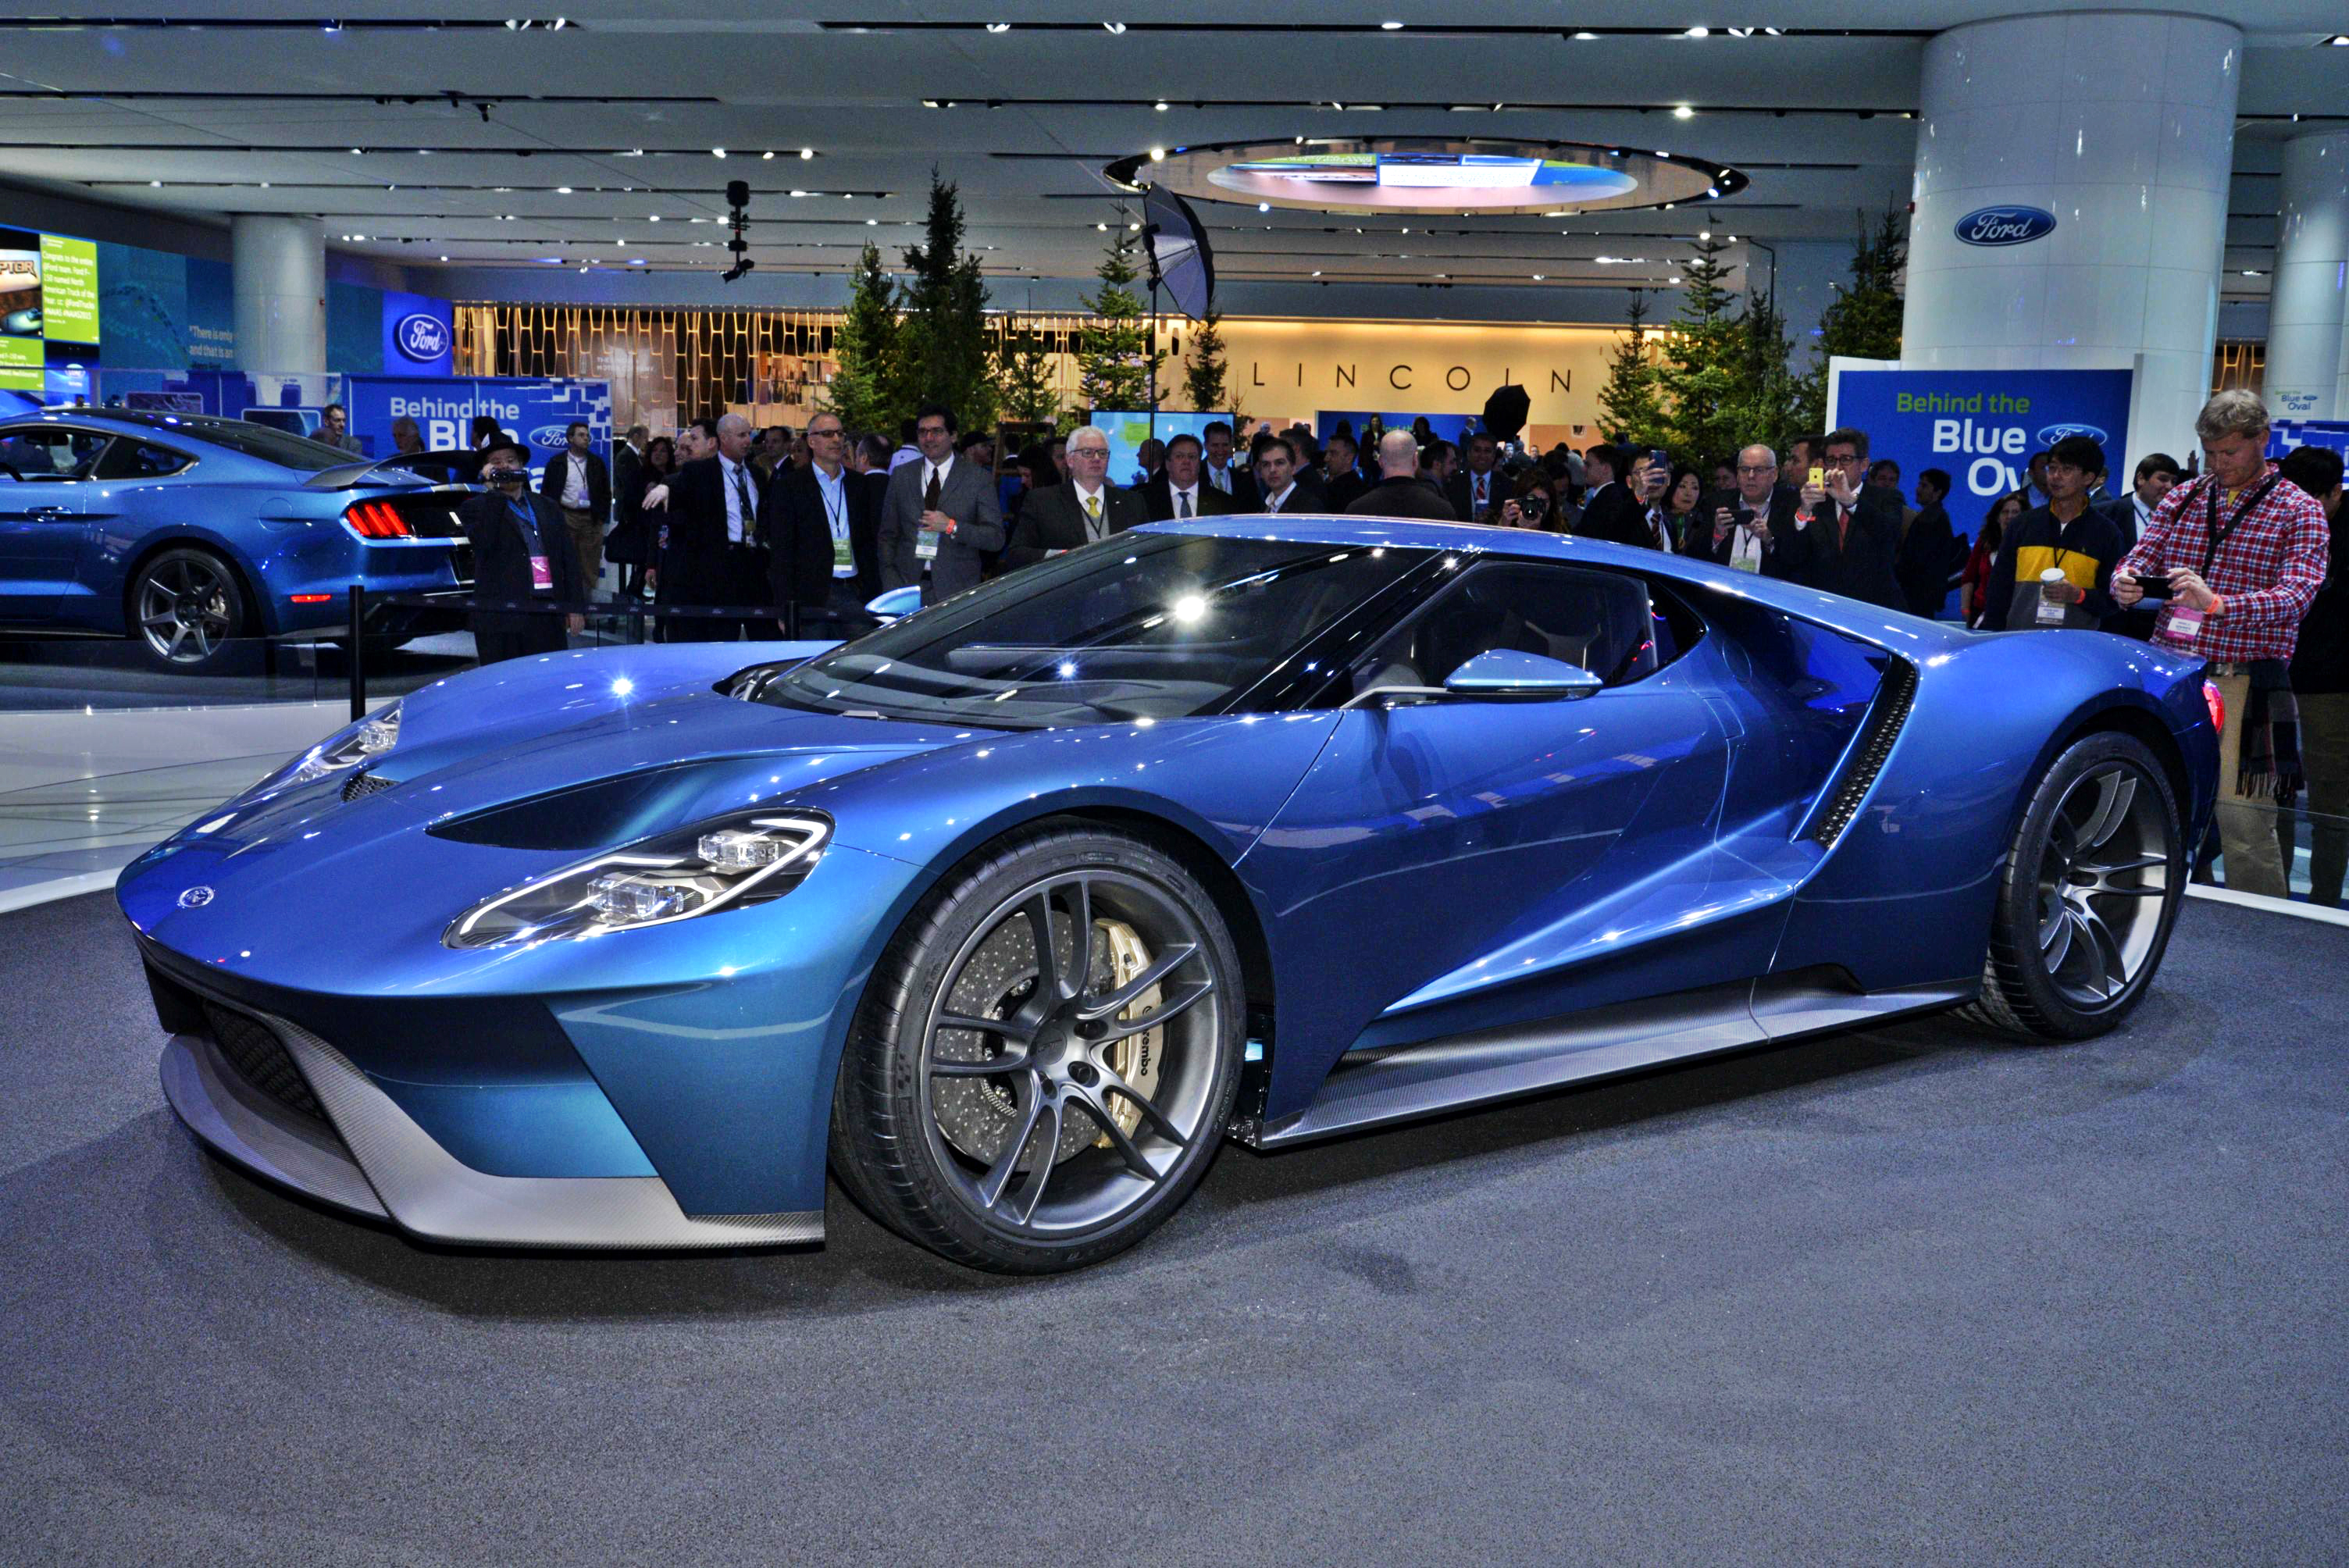 Ford Today Unveiled The All New Gt An Ultra High Performance Supercar That Serves As A Technology Showcase For Top Ecoboost Performance Aerodynamics And